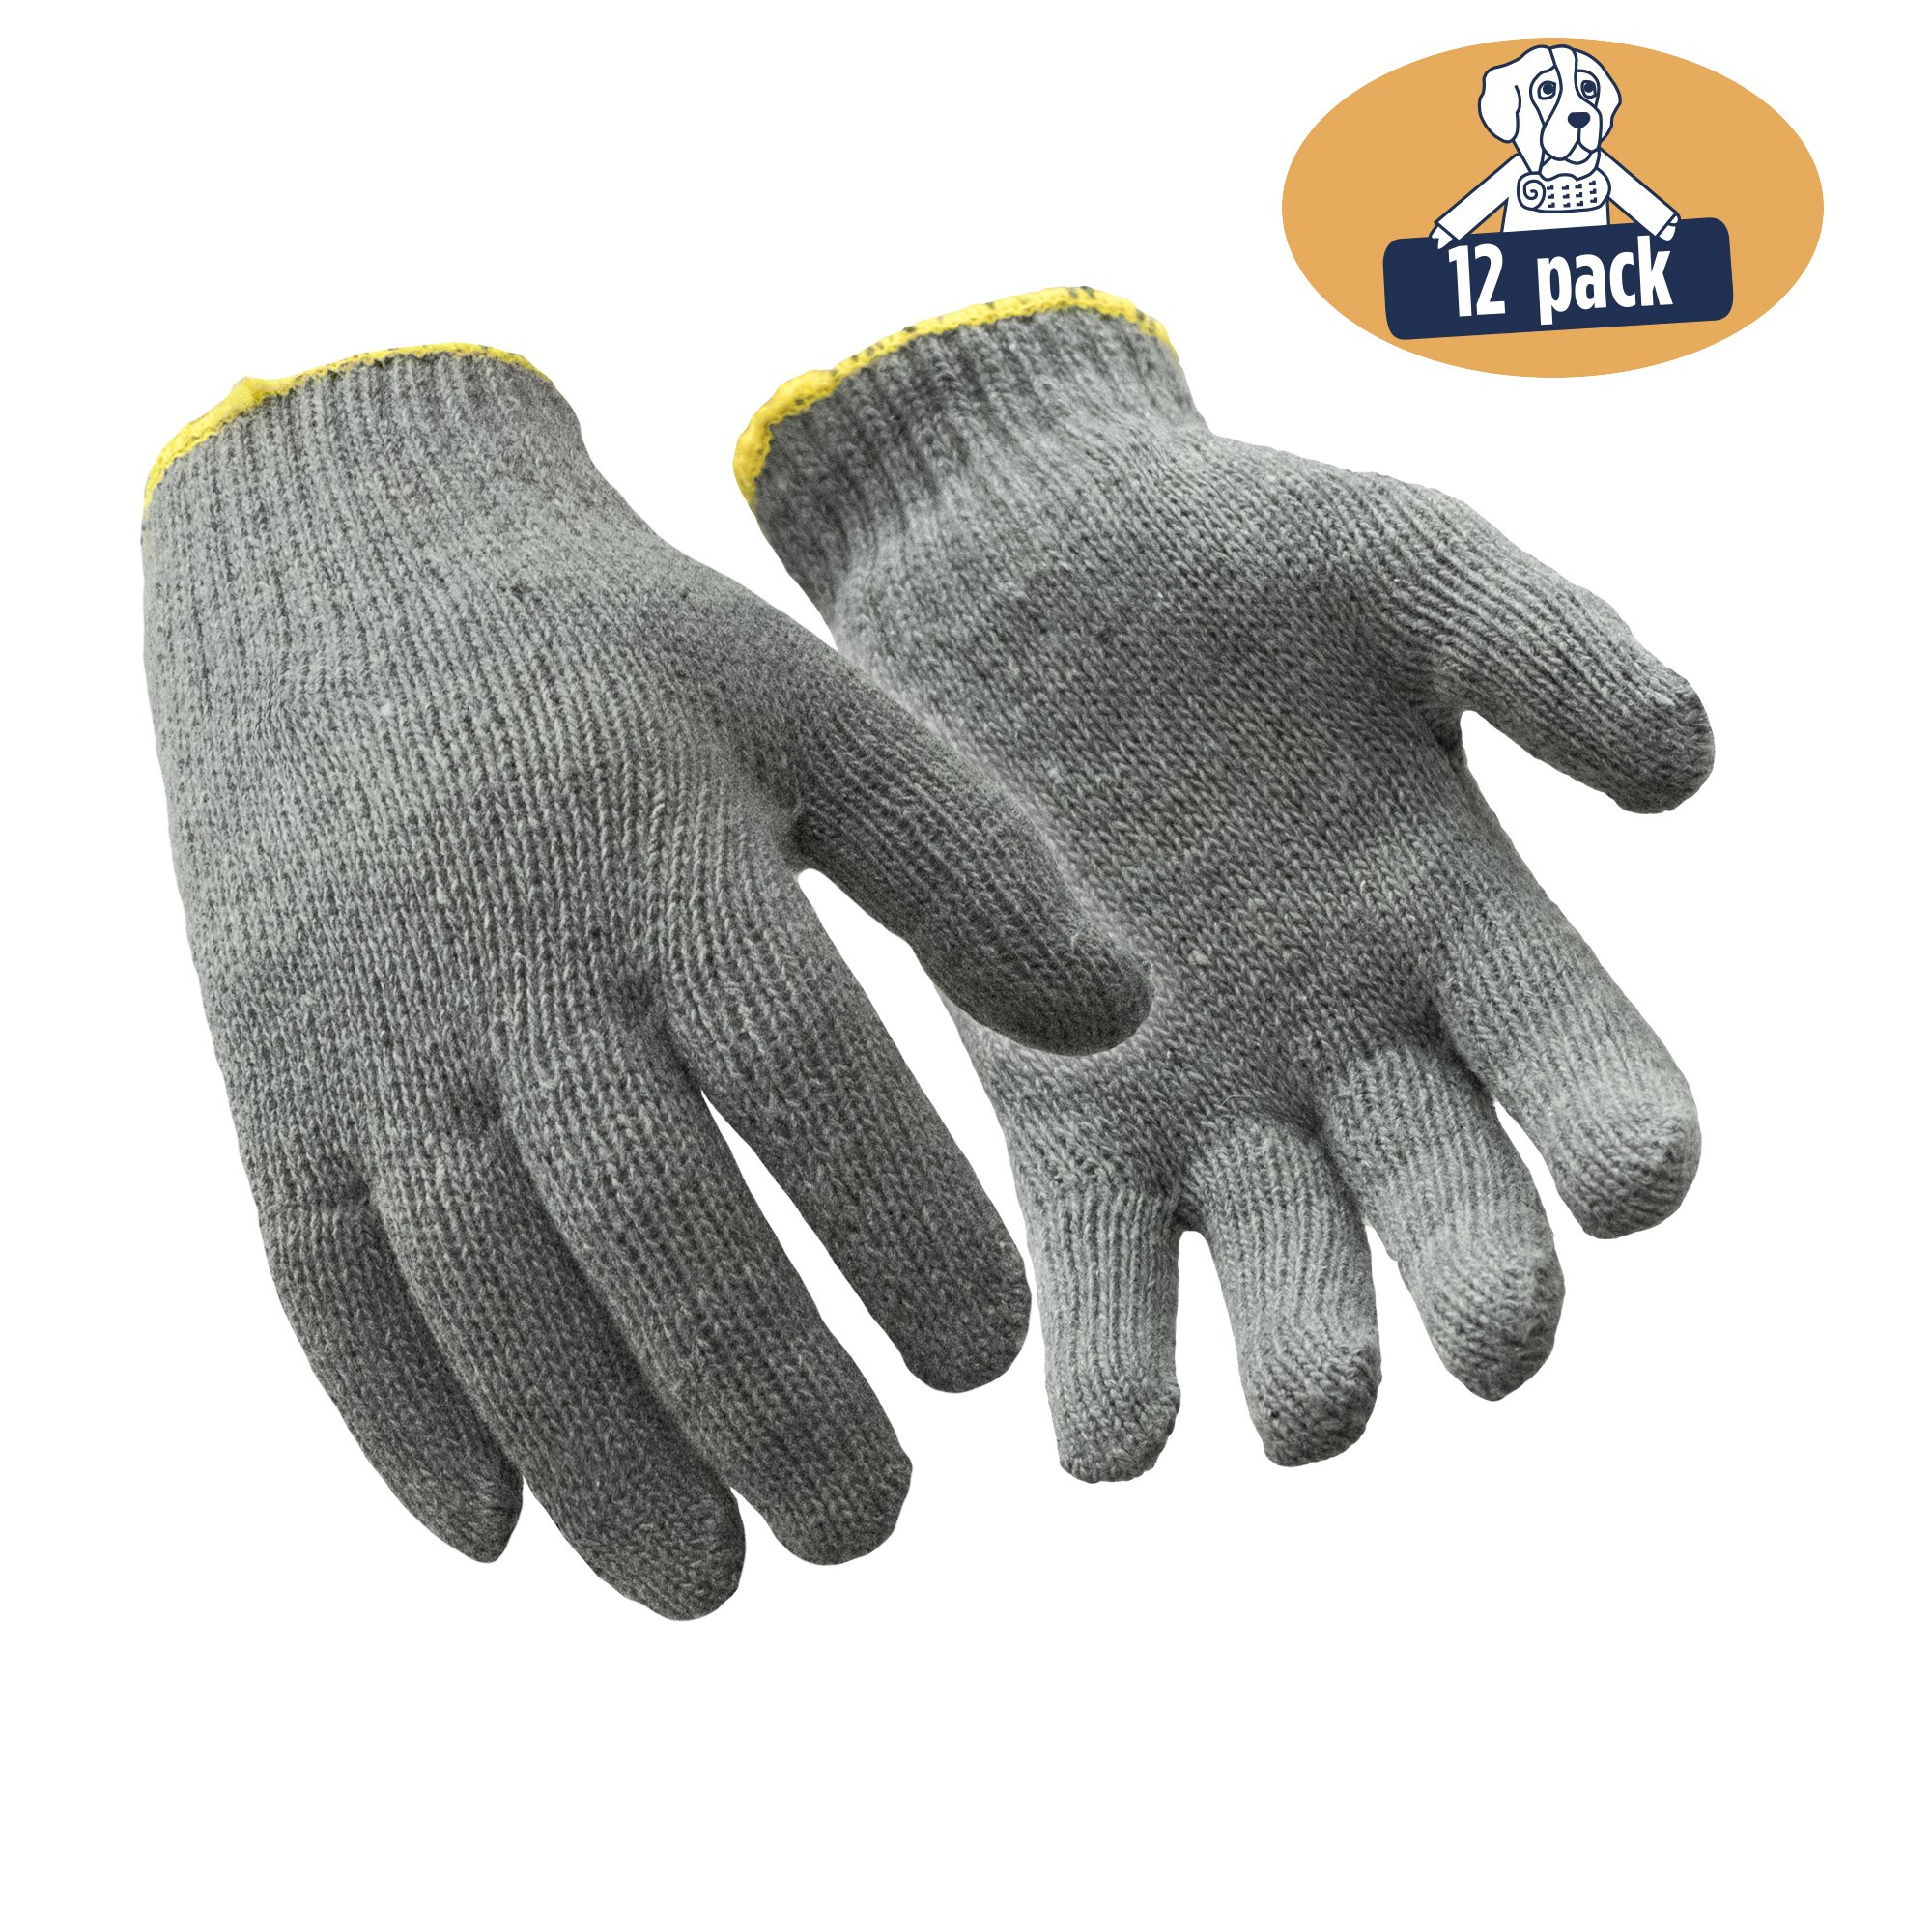 RefrigiWear Midweight String Knit Glove Liners, Pack of 12 Pairs (Gray, Large)